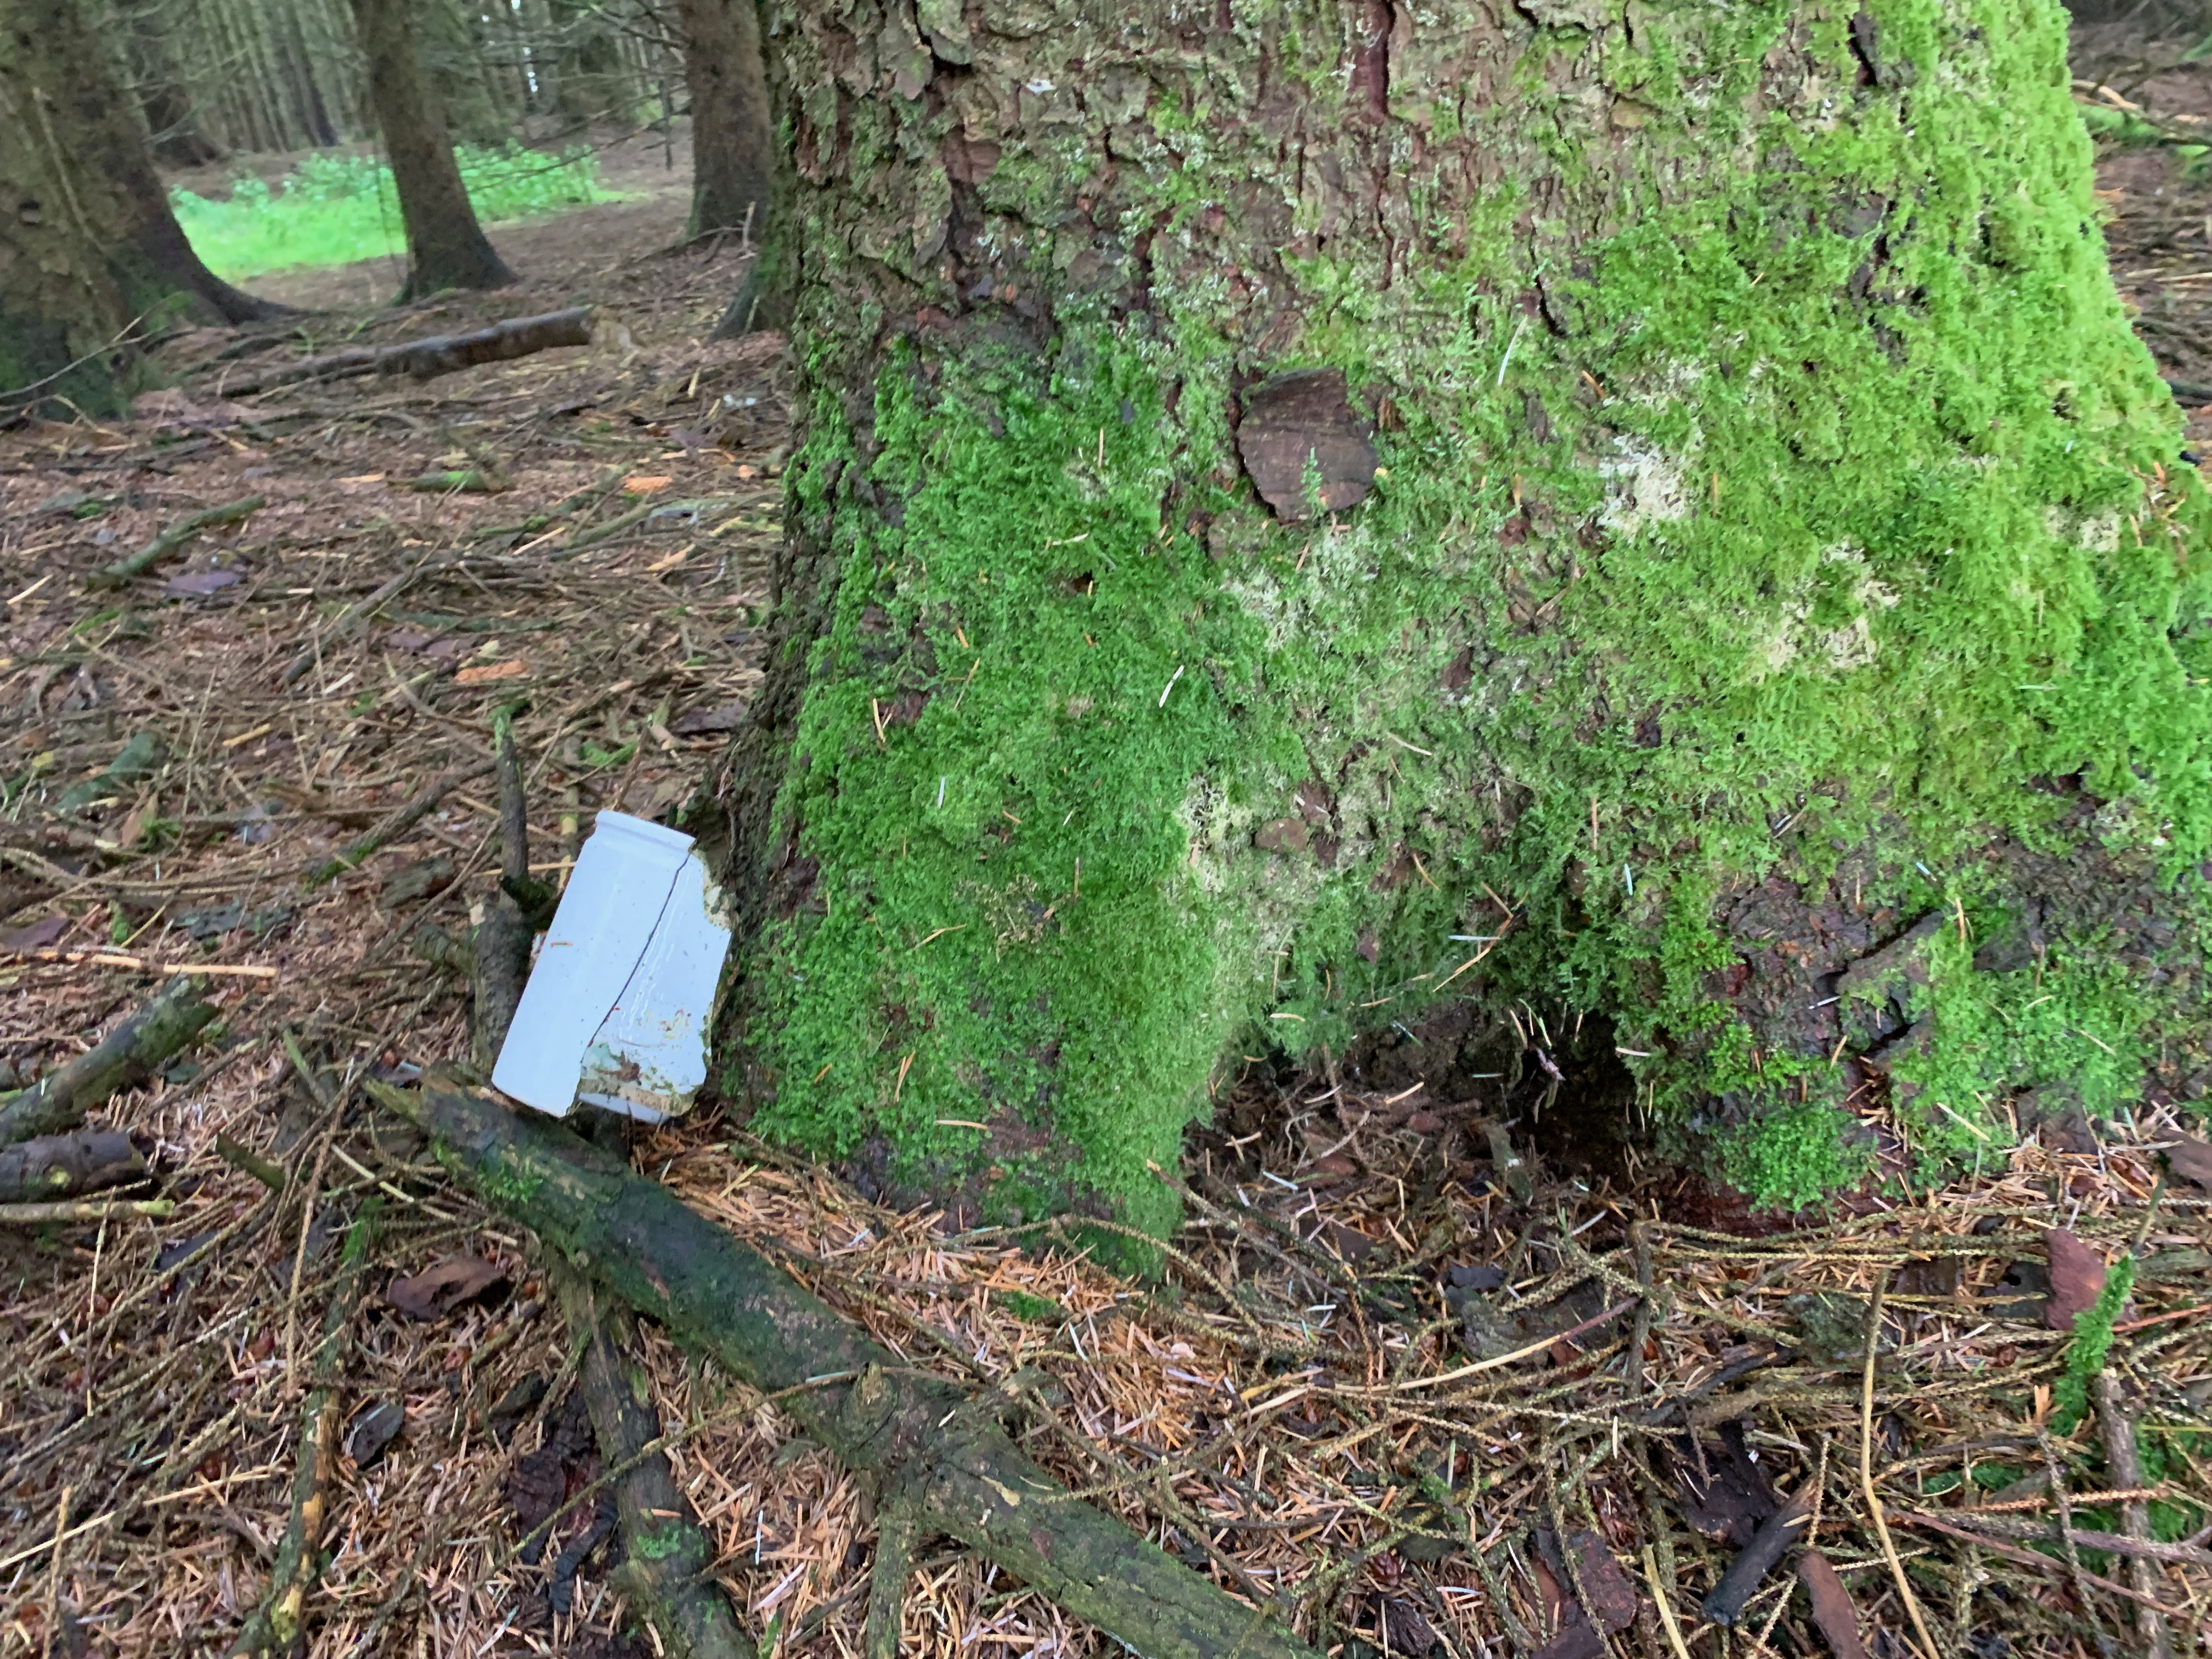 remains of half a earthenware mug agains a tree in a forest